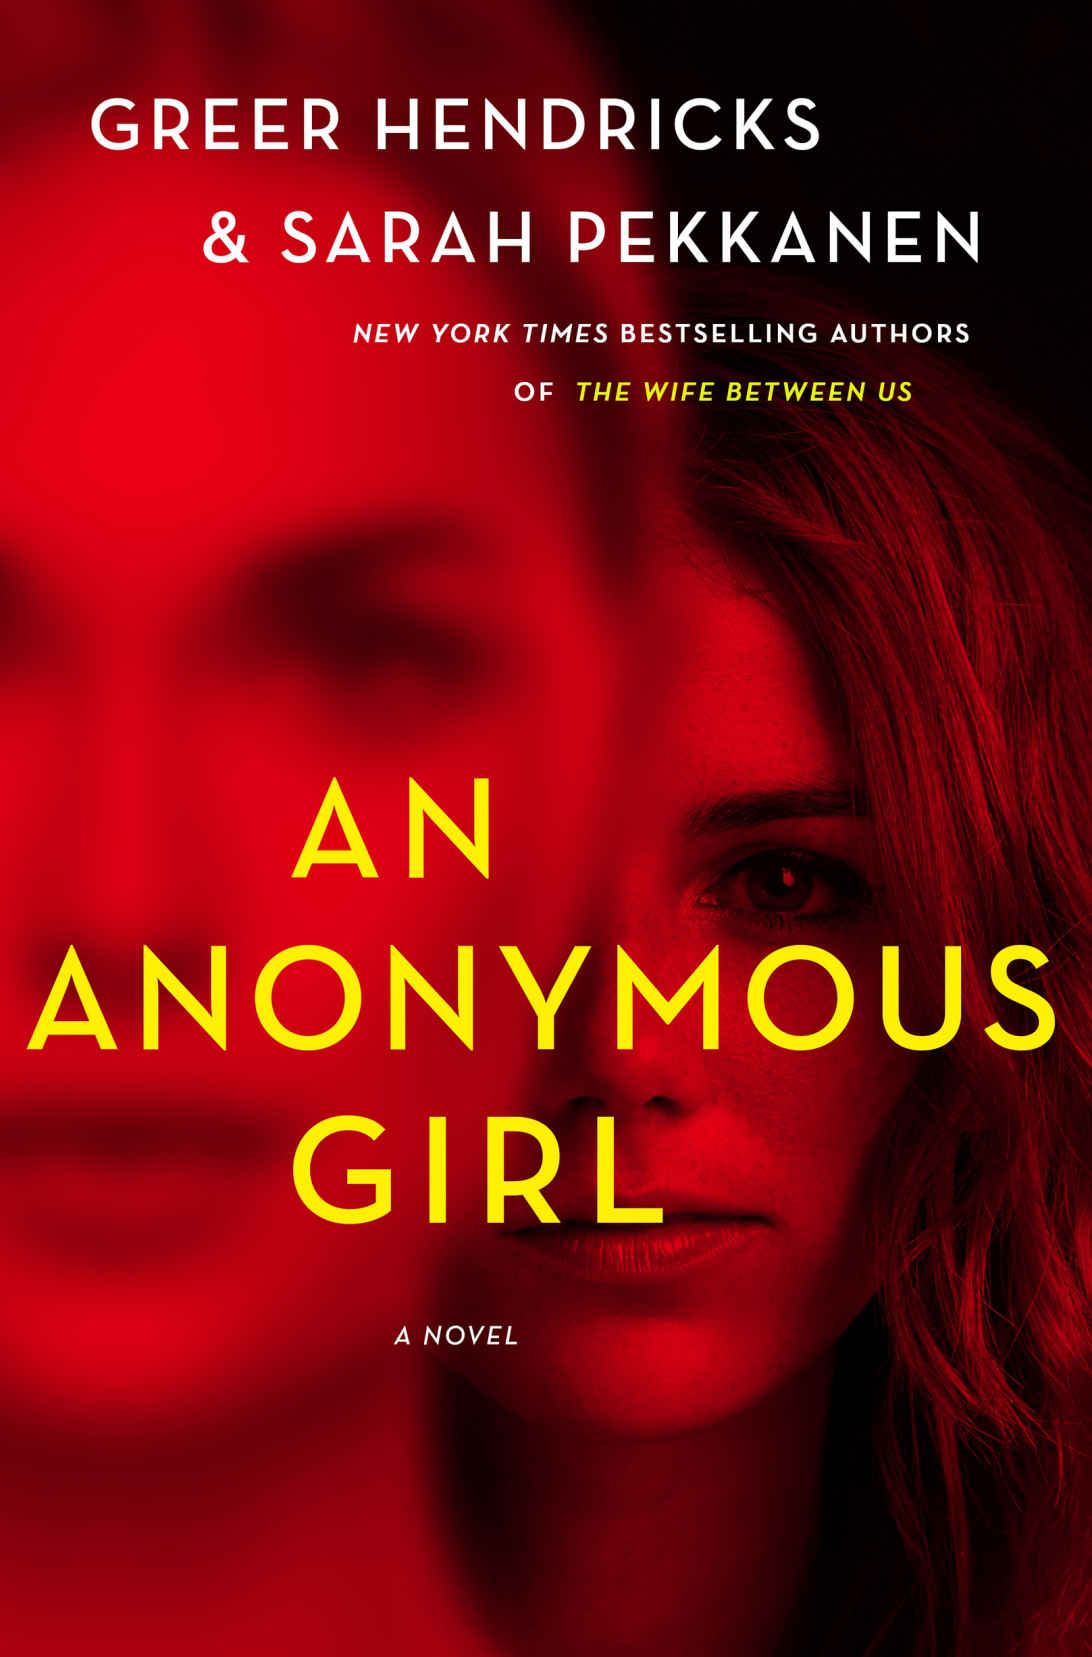 An Anonymous Girl: A Novel - Greer Hendricks, Sarah Pekkanen [kindle] [mobi]